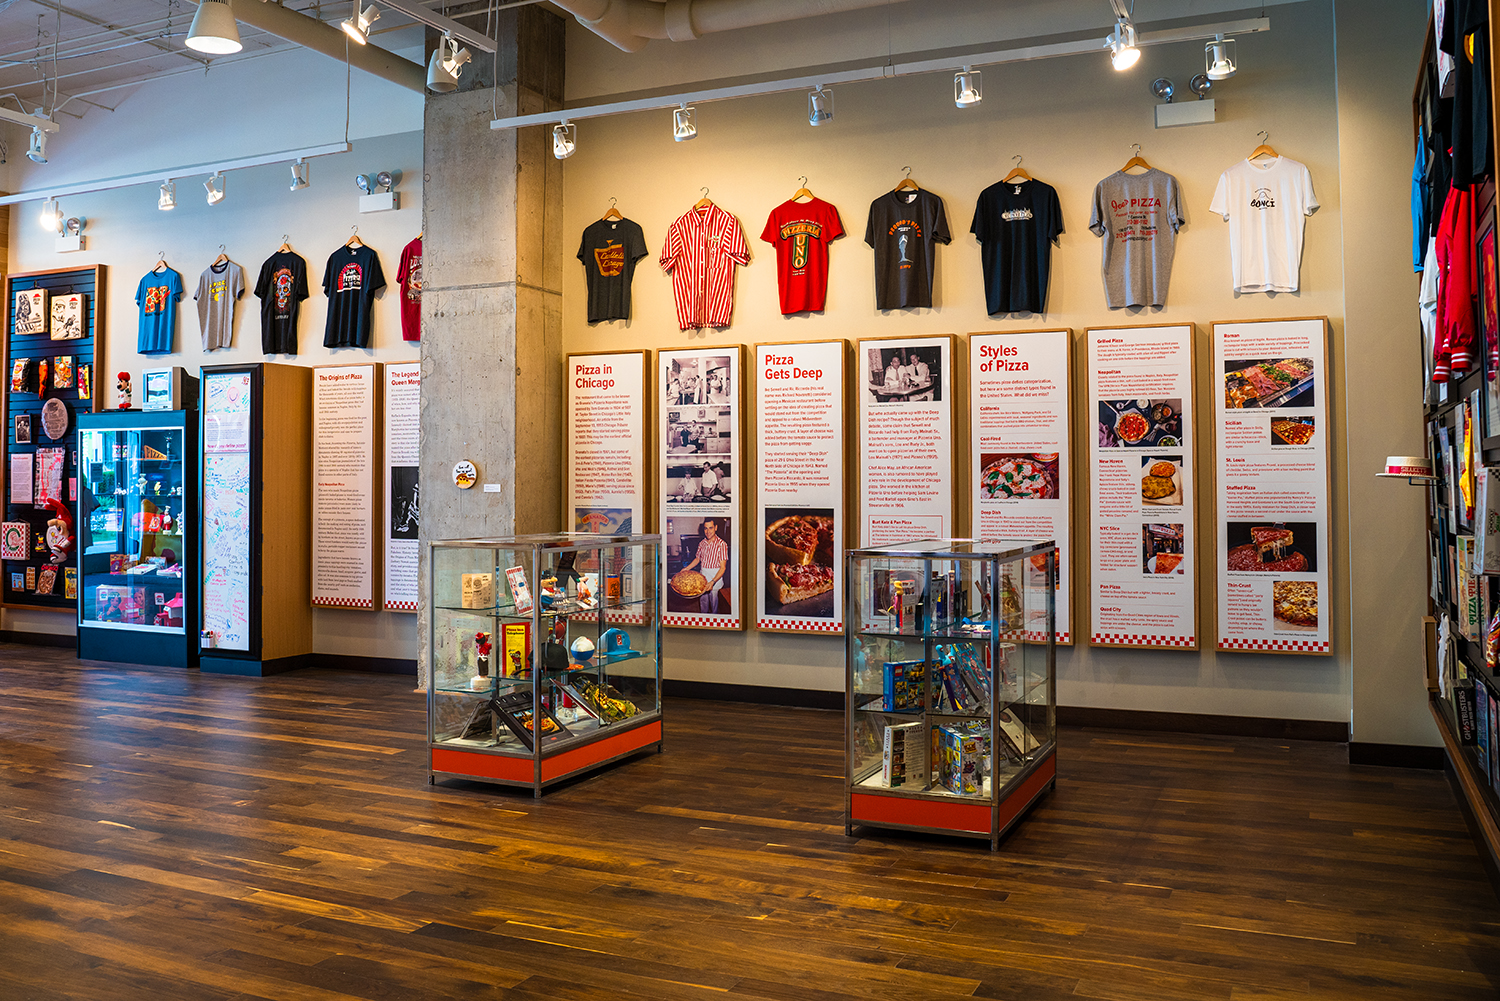 The+museum+spotlights+Chicago+pizza+history+alongside+information+about+pizza%27s+role+in+American+culture.